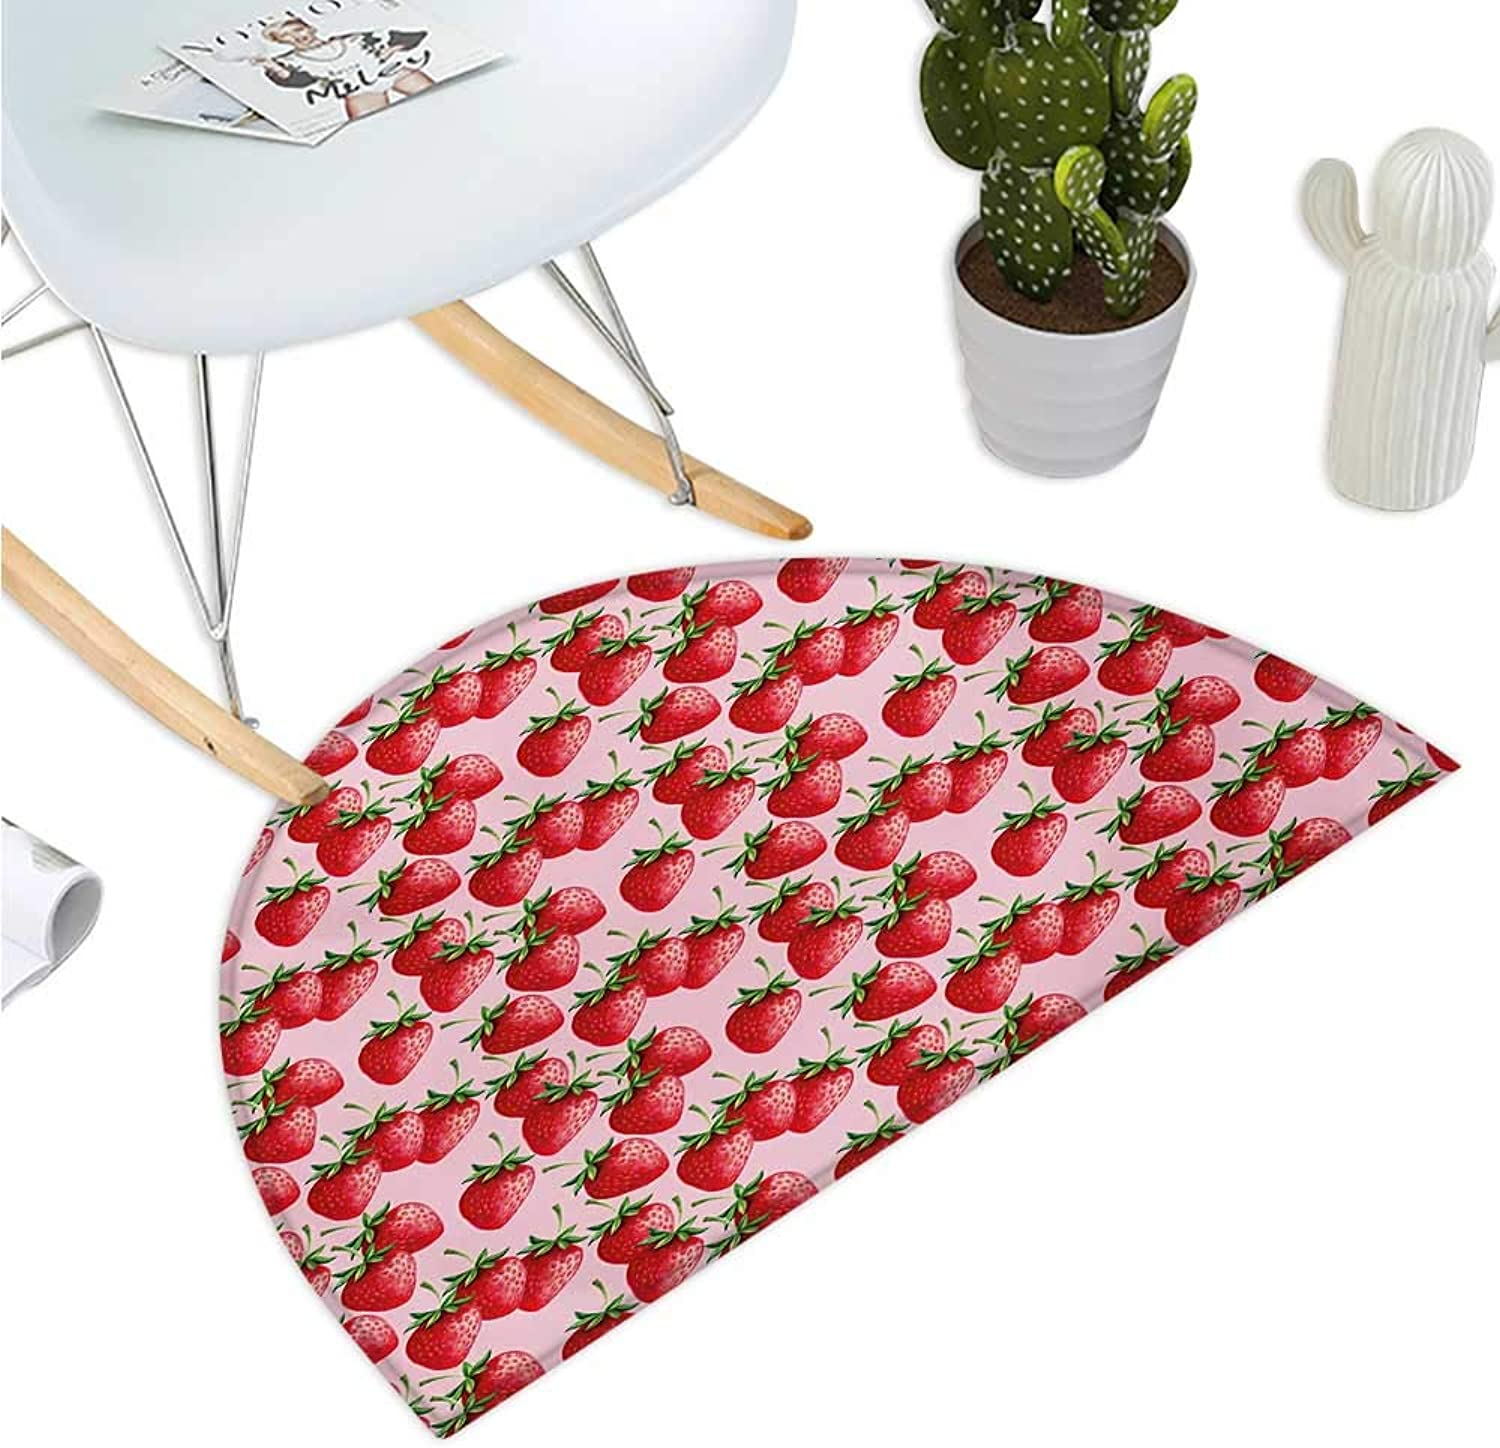 Red Semicircular Cushion Delicious Big Strawberries on Pink Background Tasty Juicy Sweet Ripe Summer Fruits Entry Door Mat H 43.3  xD 64.9  Red Green Pink